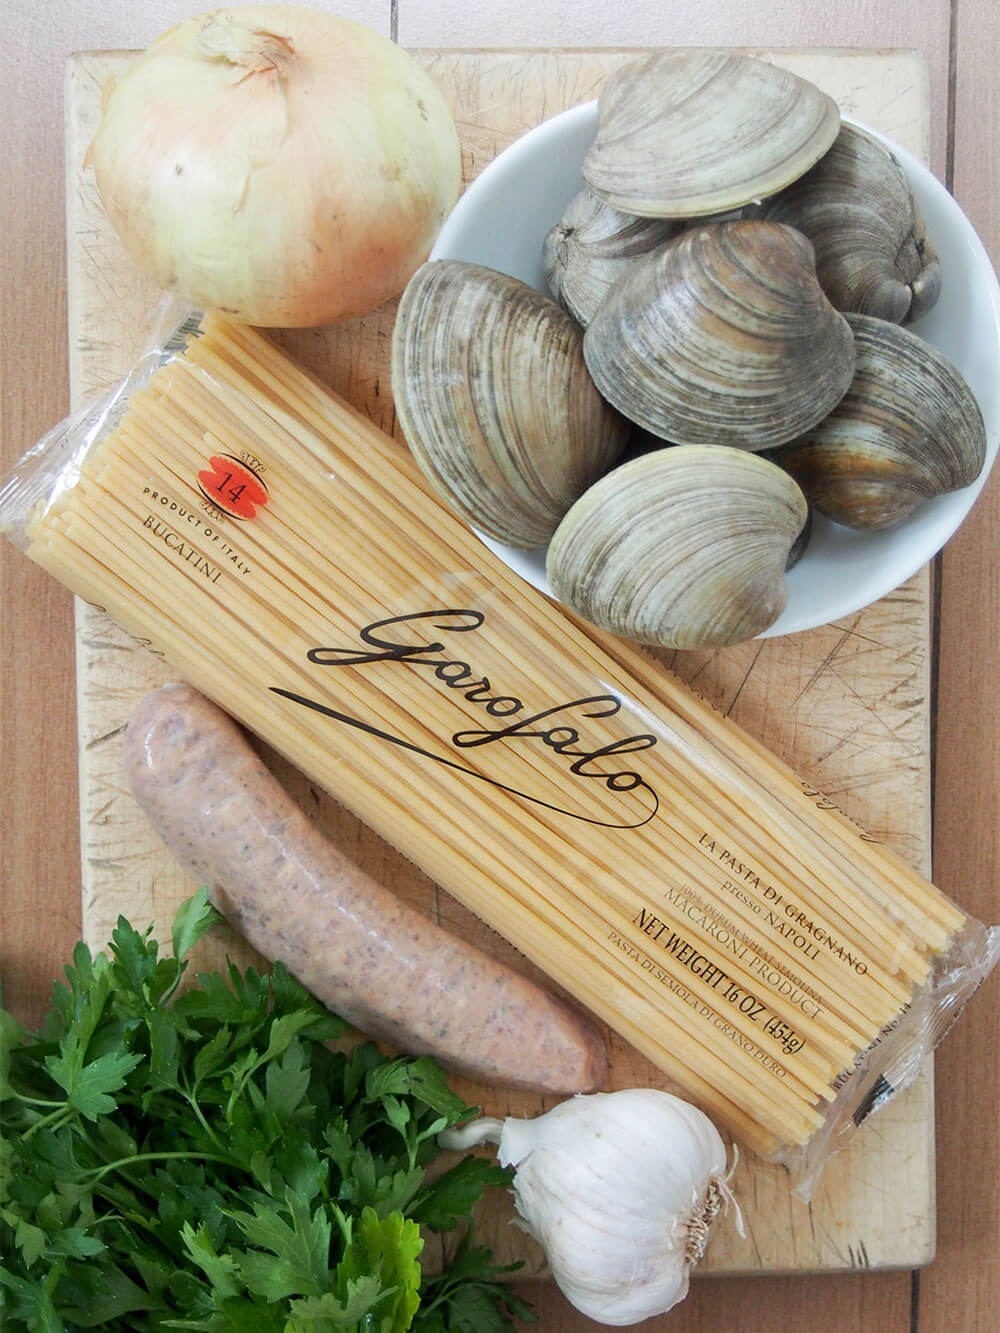 ingredients for Pasta with clams and sausage